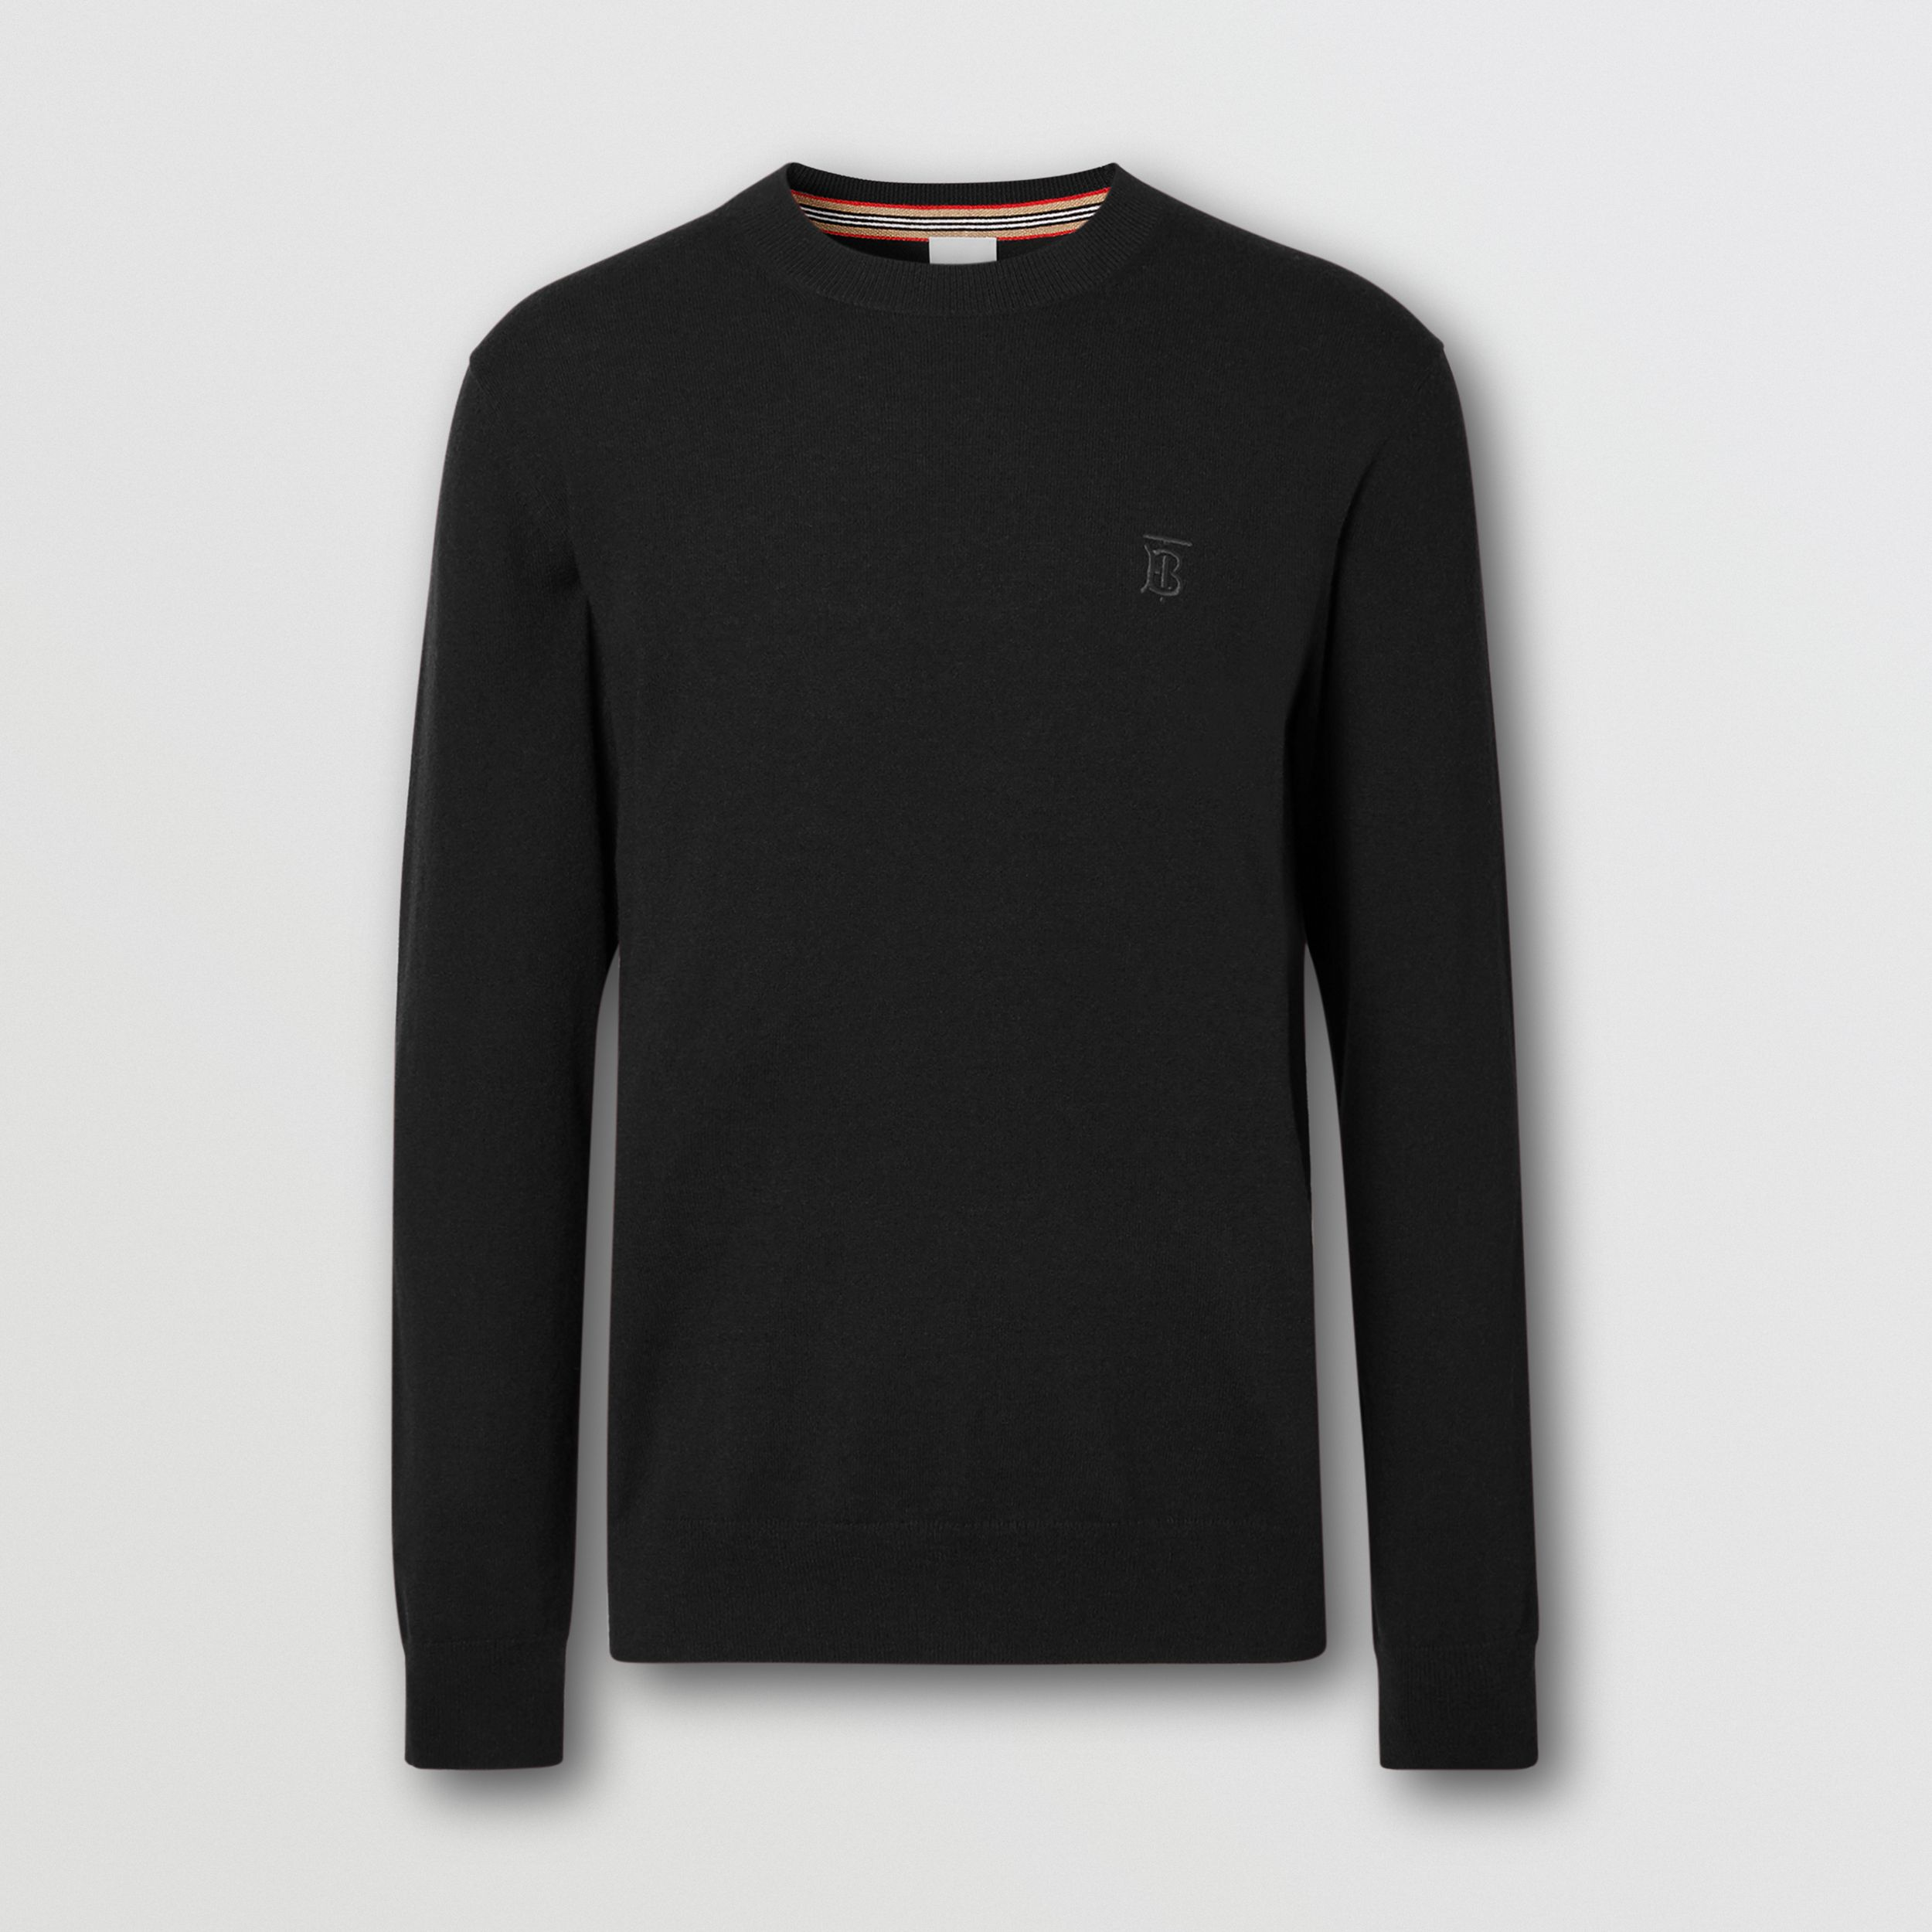 Monogram Motif Cashmere Sweater in Black - Men | Burberry Australia - 4